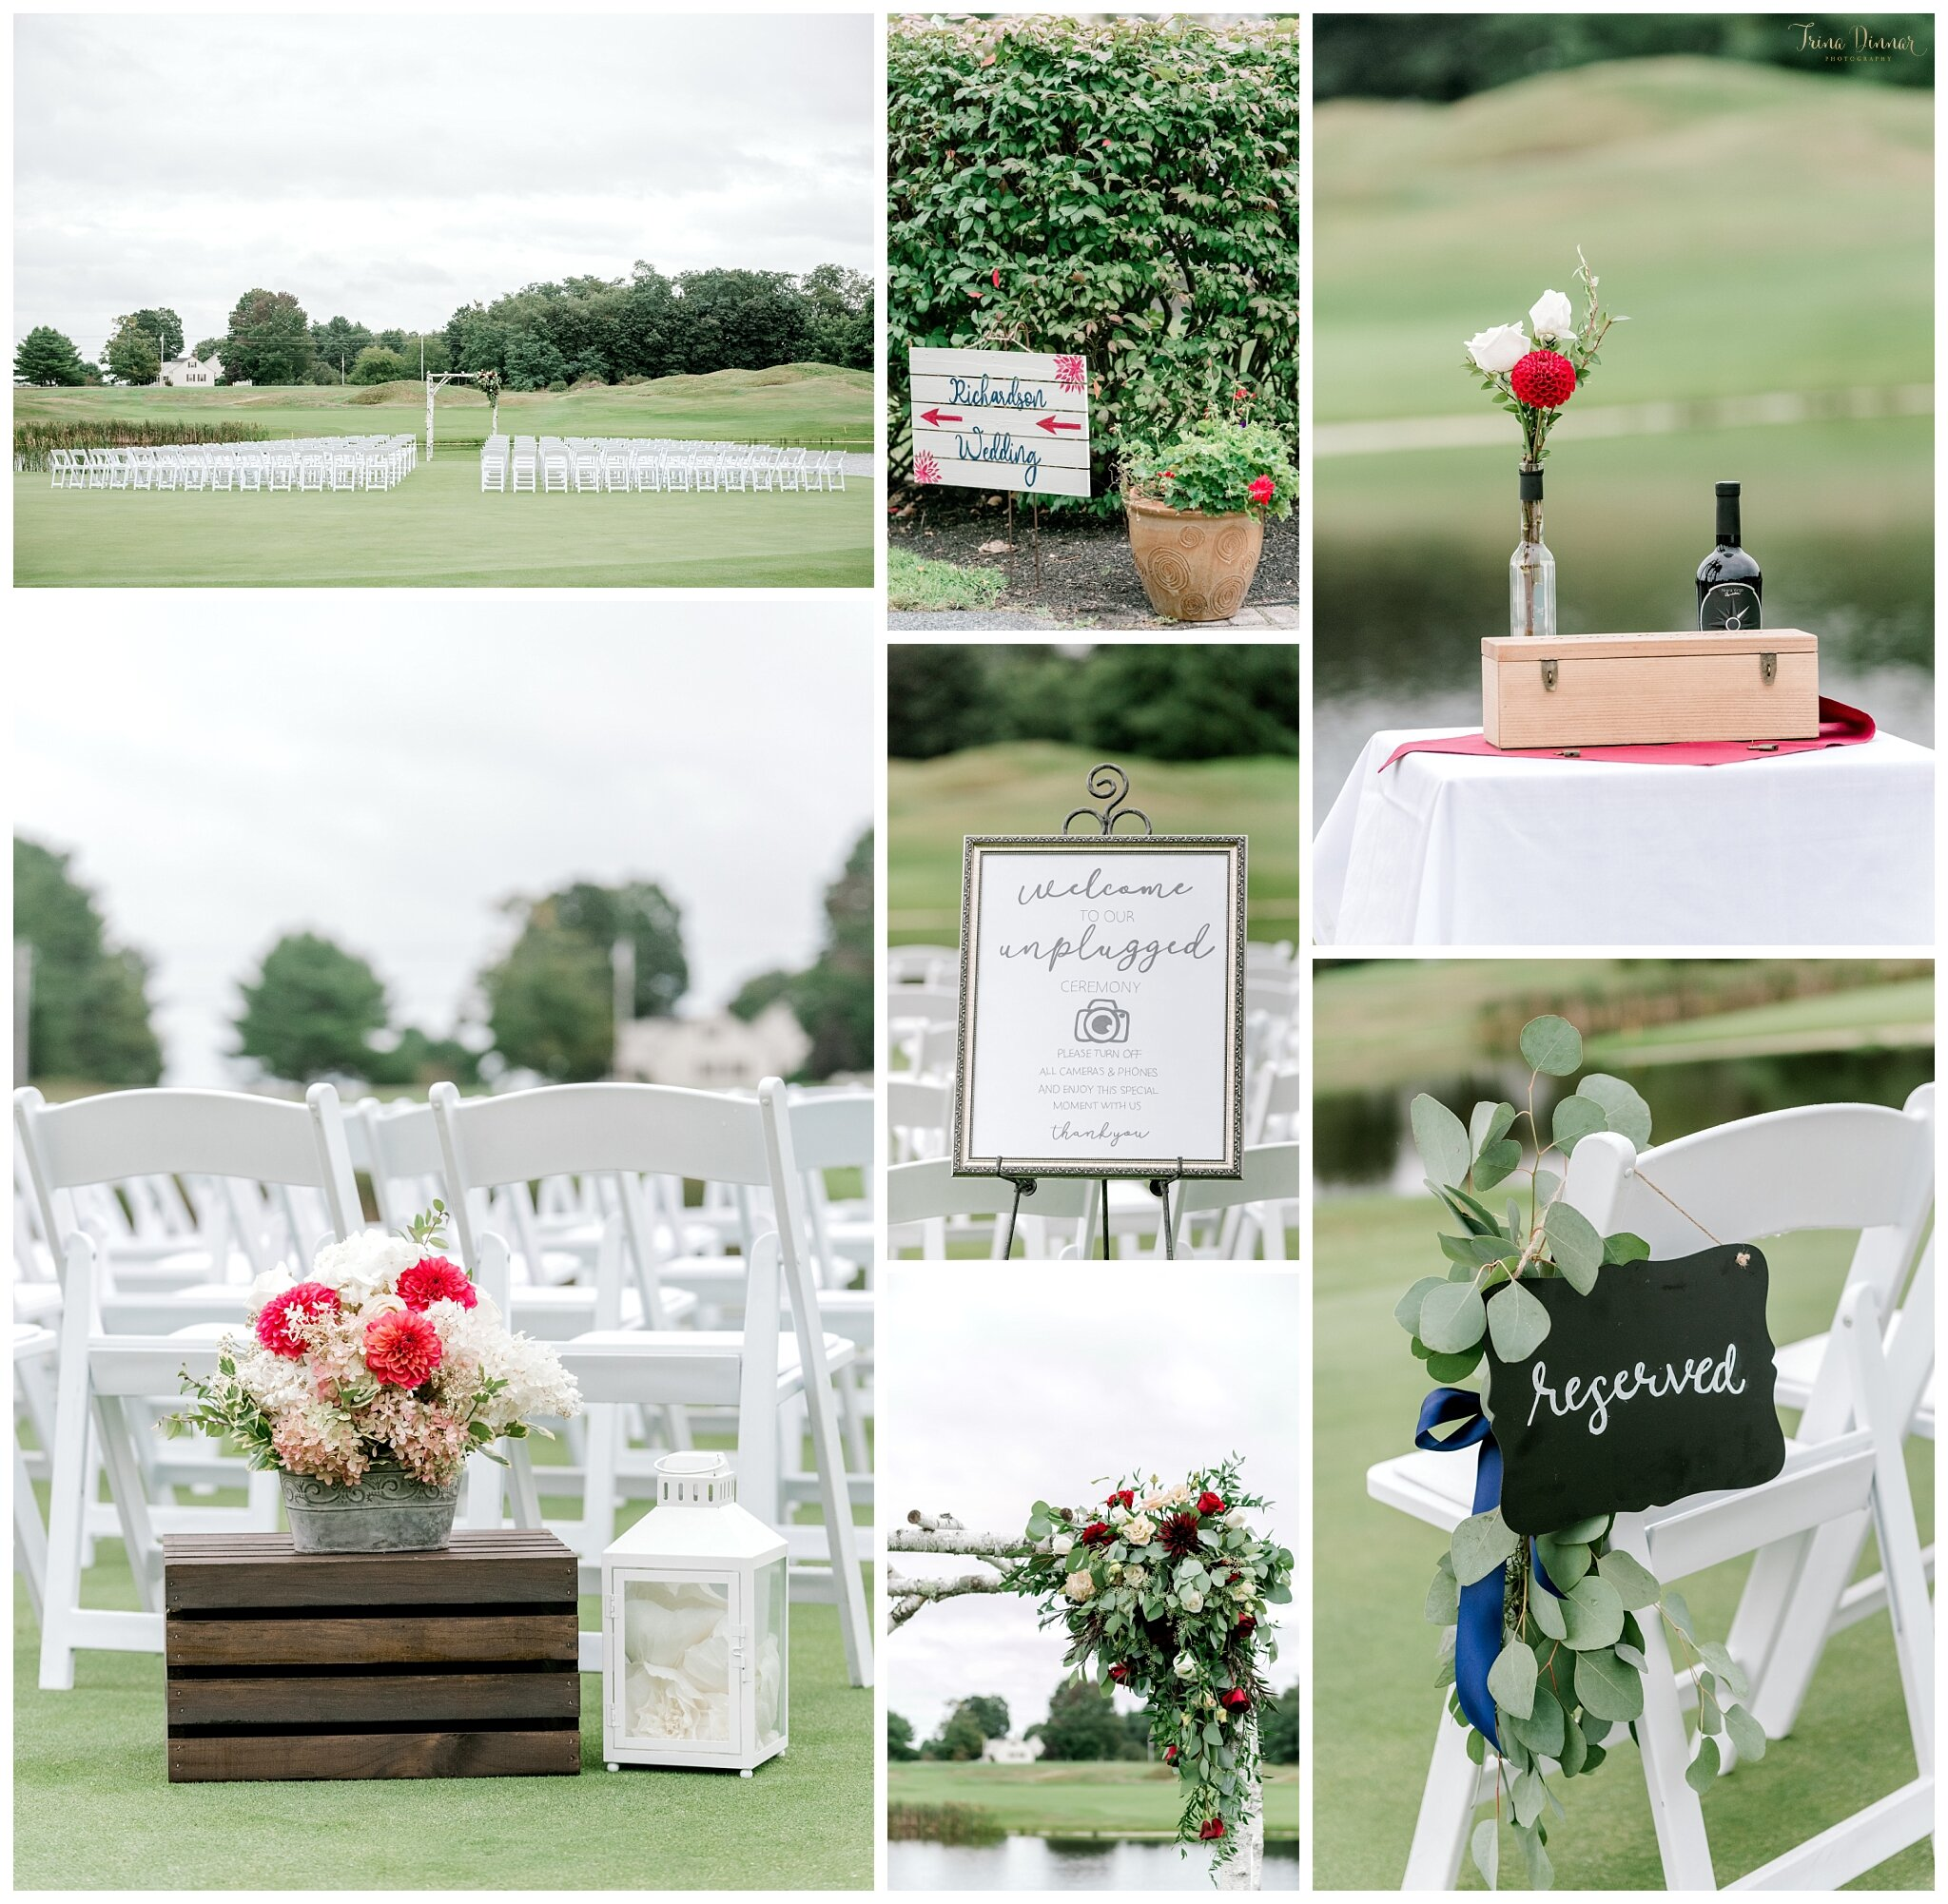 Maine Wedding Ceremony at the Falmouth Country Club.